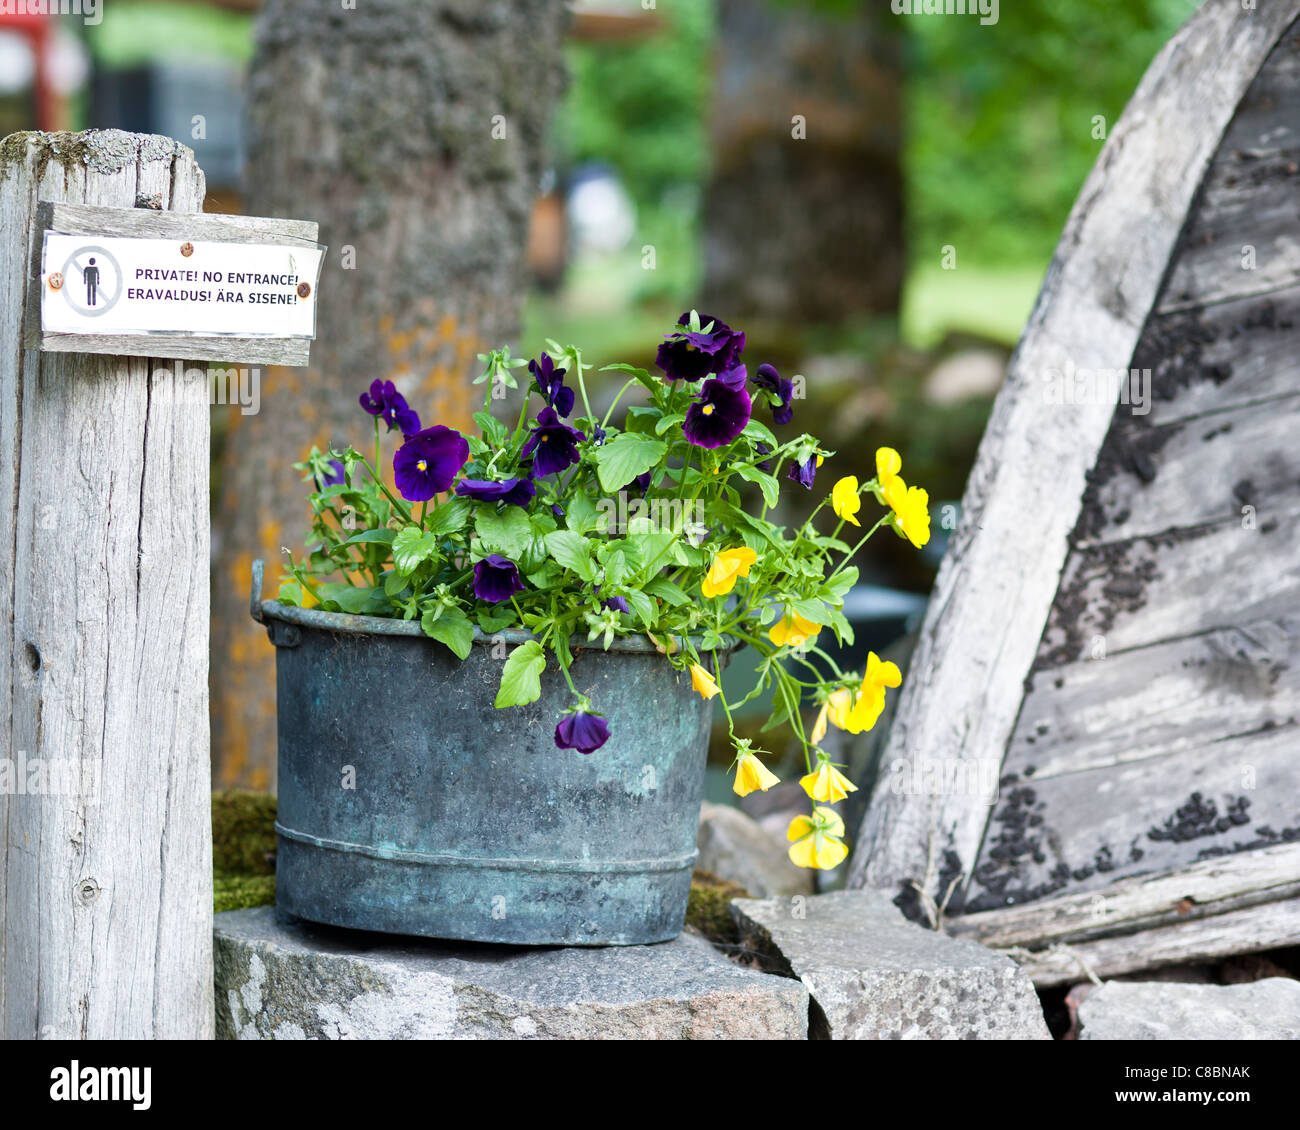 Flowerpot with pansies on top of a stonewall - Stock Image